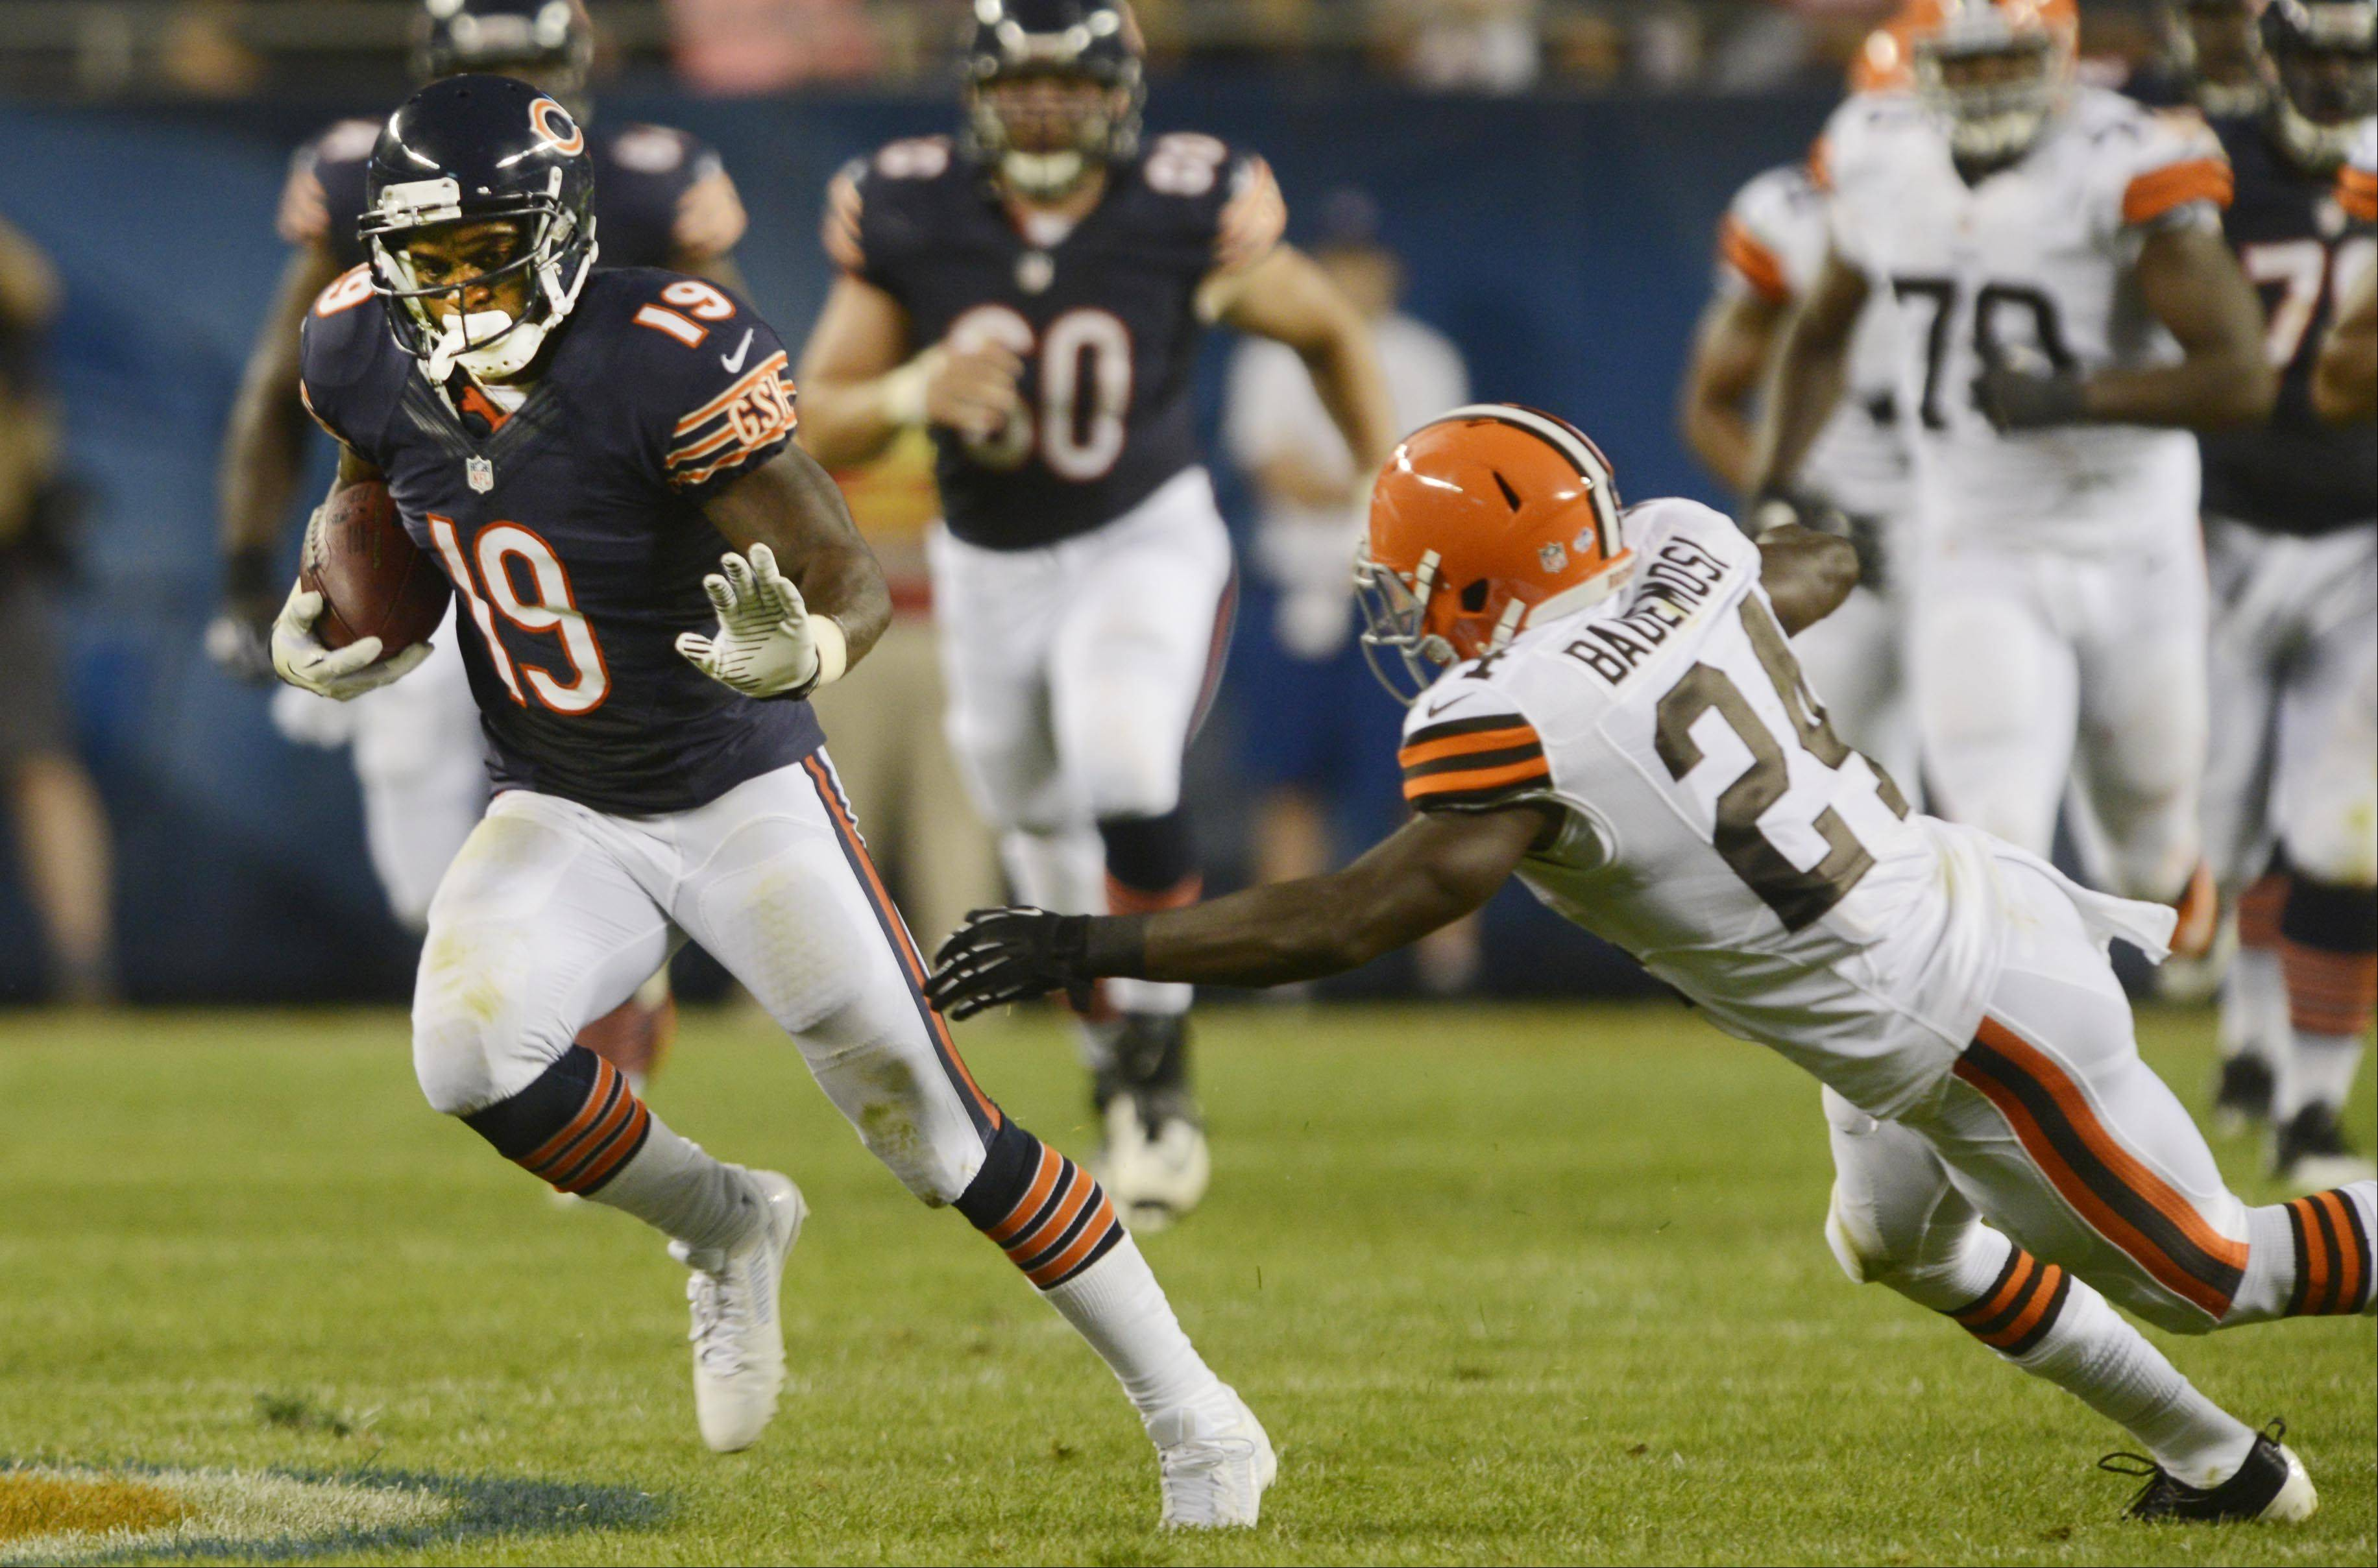 Chicago Bears wide receiver Joe Anderson runs with a pass against the defense of Cleveland Browns cornerback Johnson Bademosi.